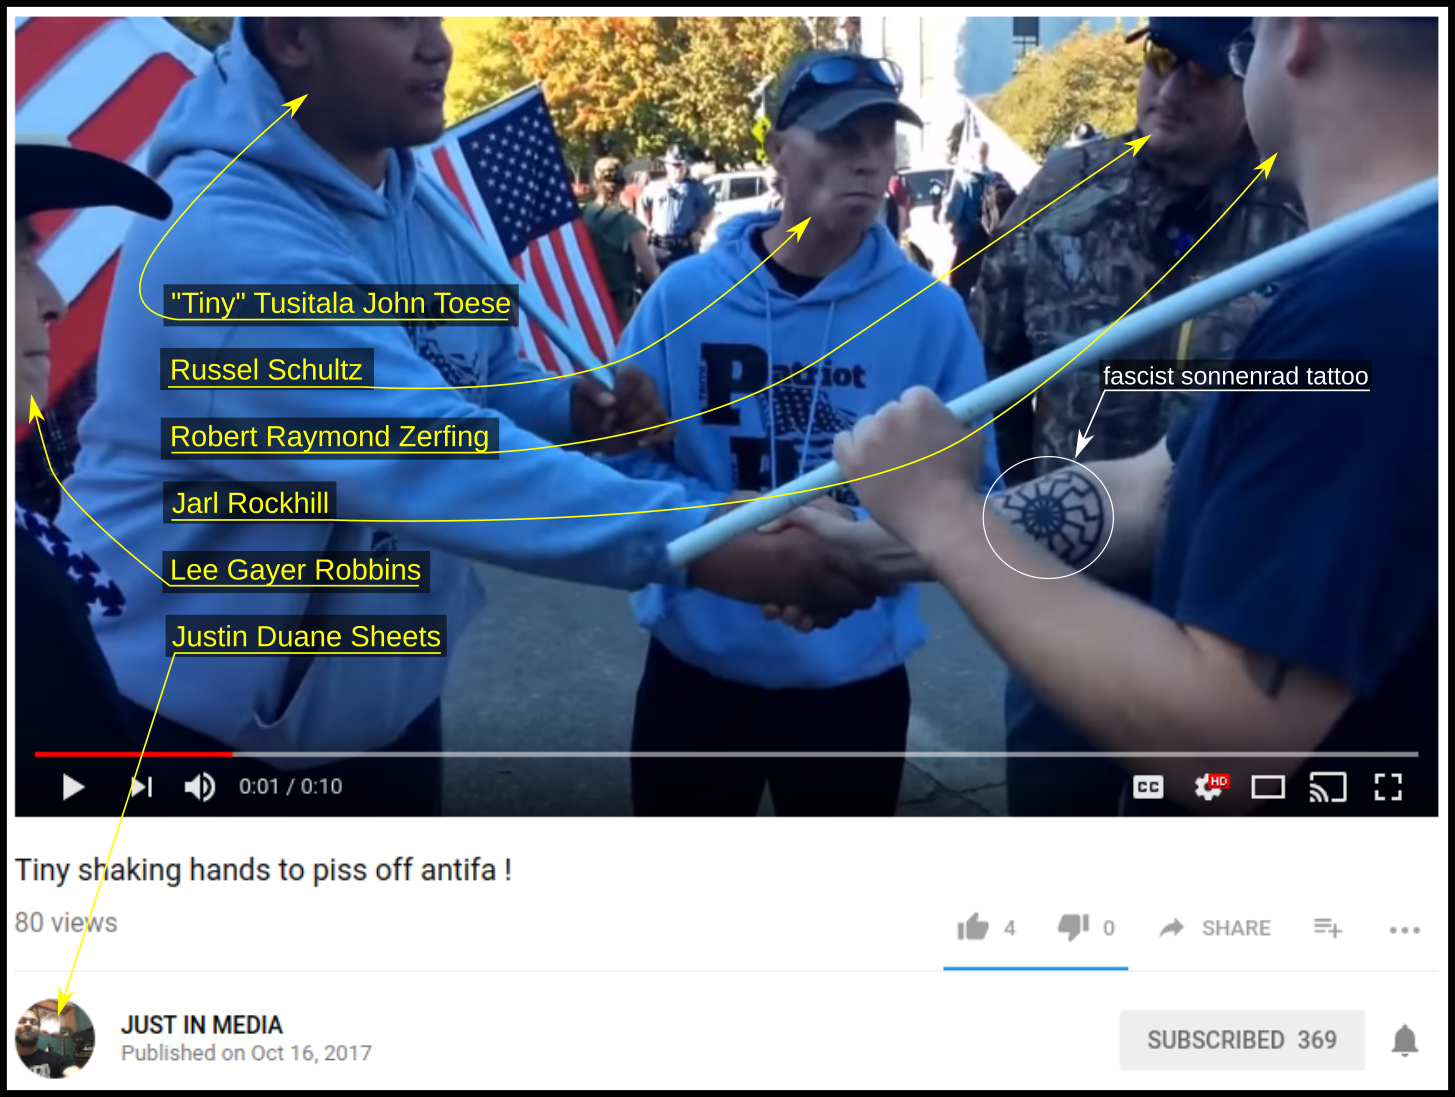 Justin Sheets films Tiny Toese shaking hands with neo-nazi Jarl Rockhill.